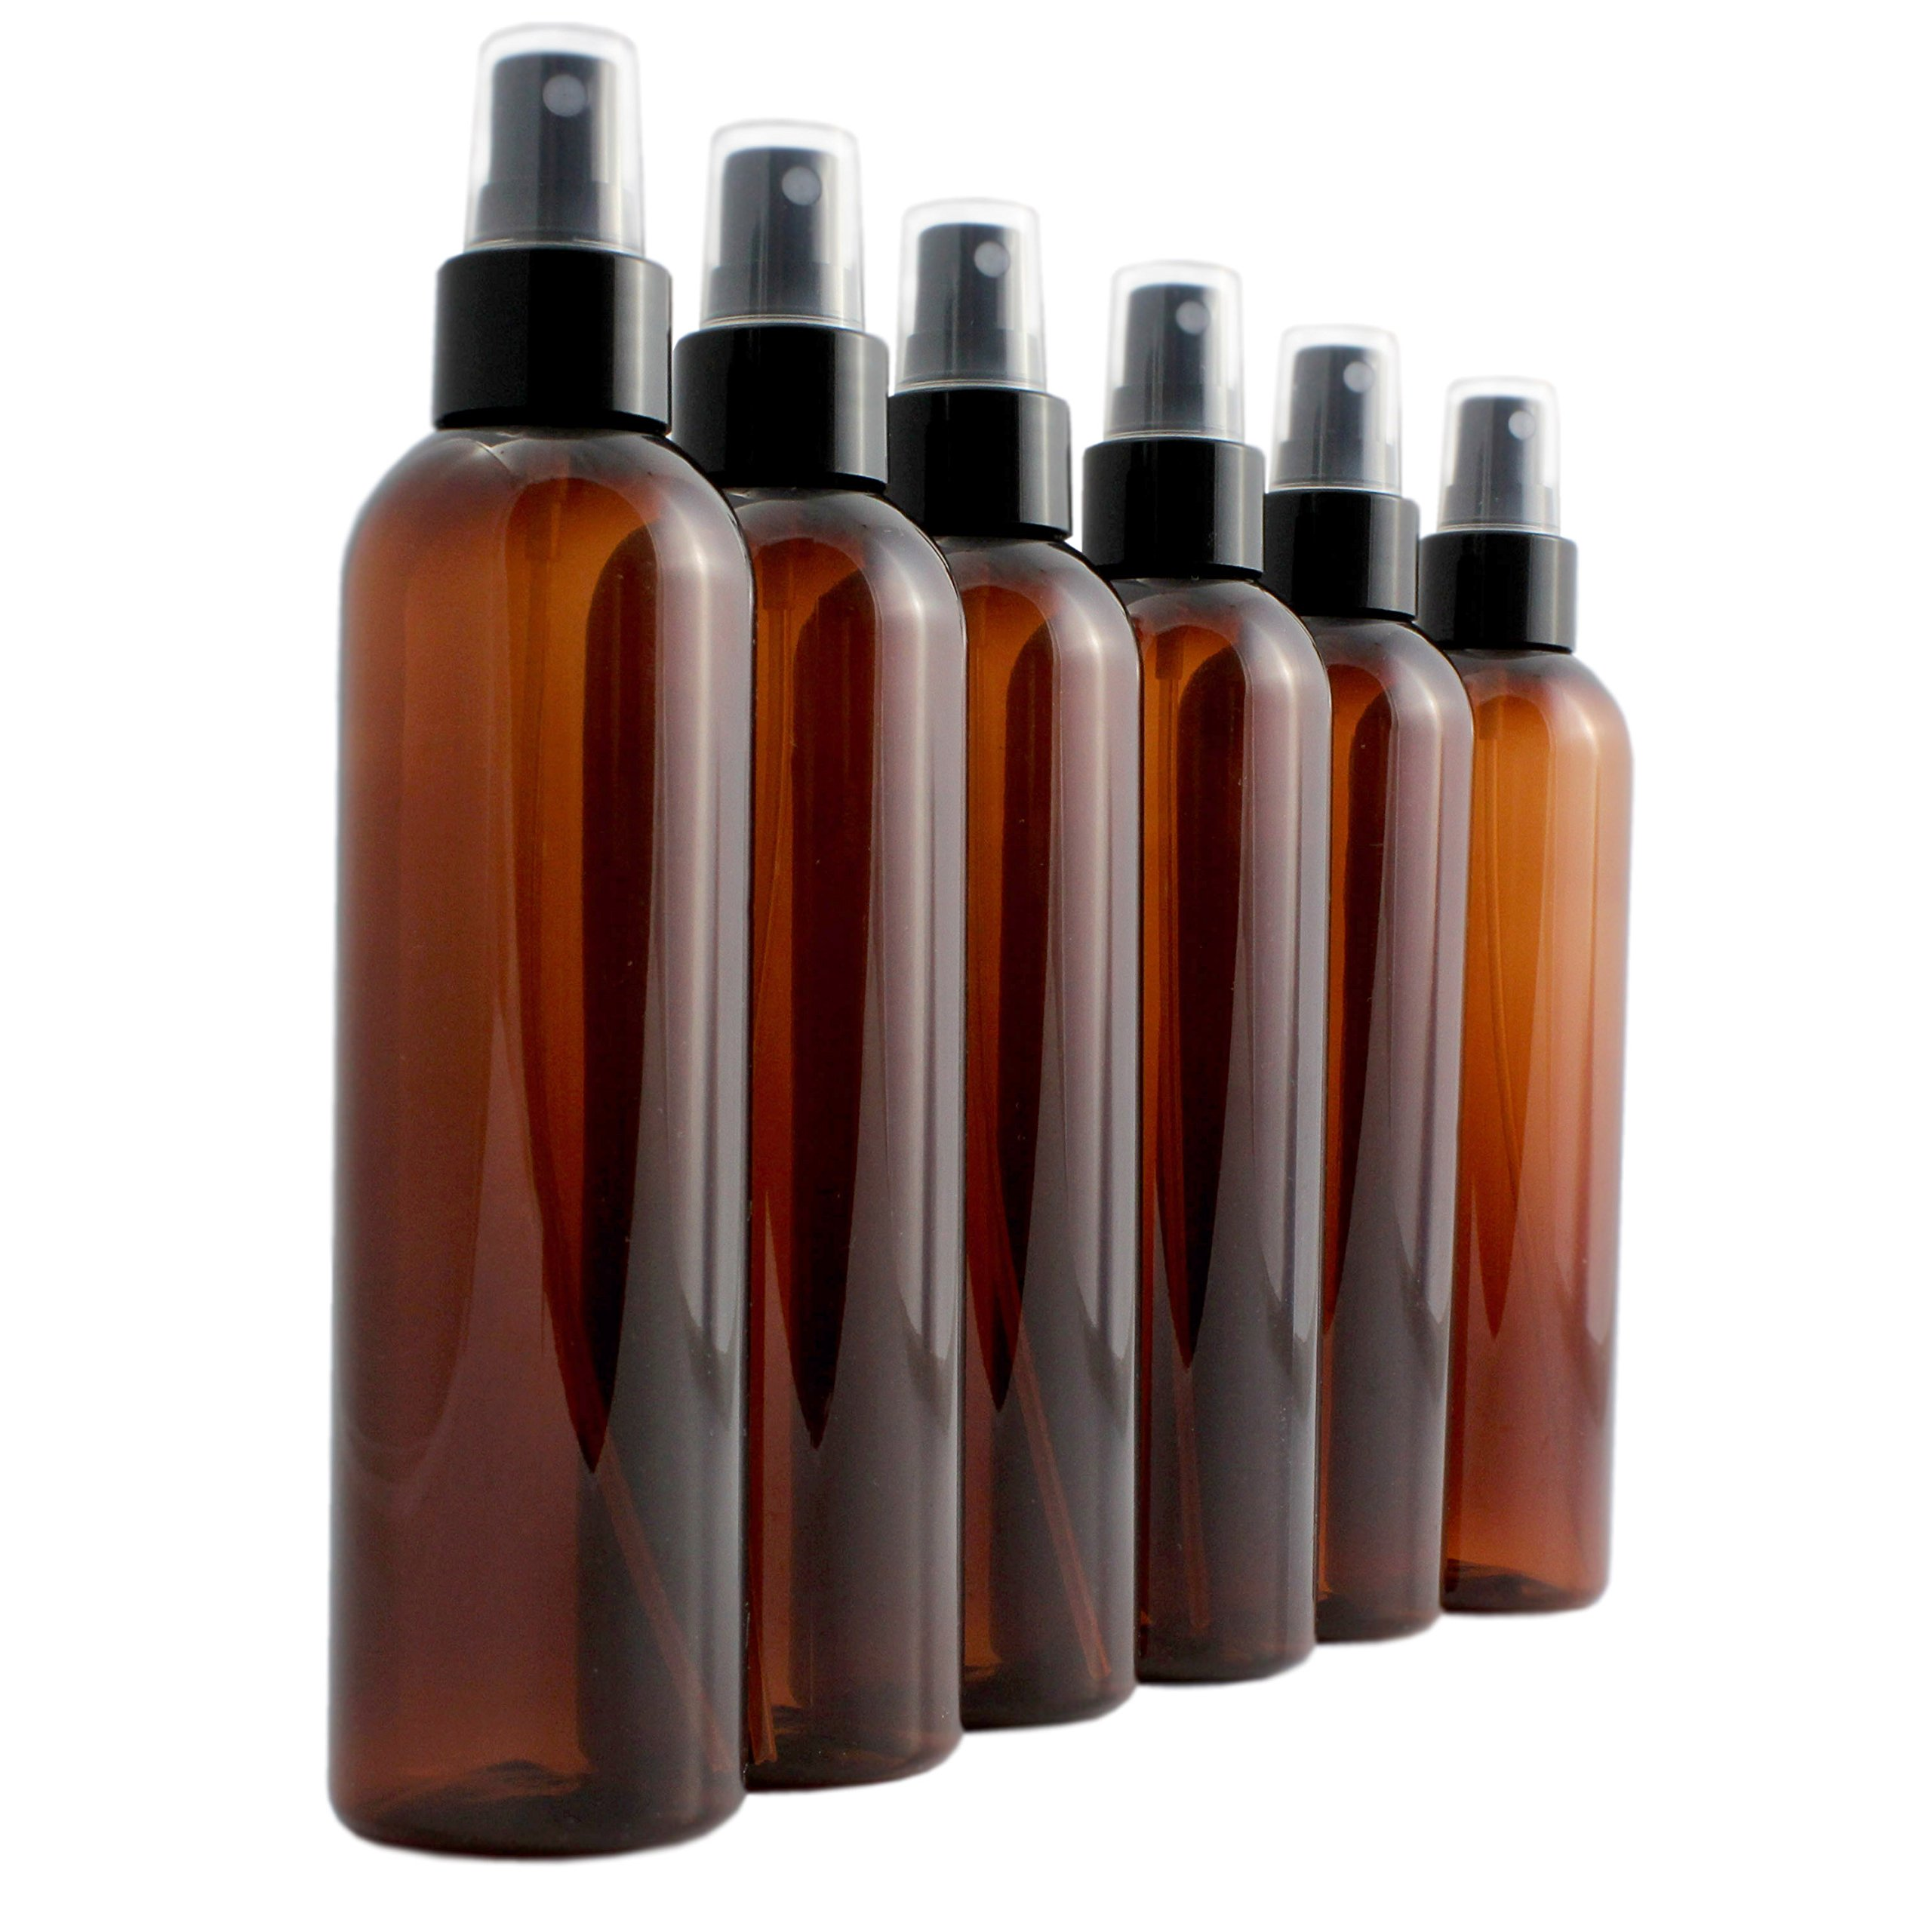 8oz Amber Brown Empty Plastic PET Spray Bottles with Fine Mist Atomizer Caps (6-pack); for DIY Home Cleaning, Aromatherapy, & Beauty Care